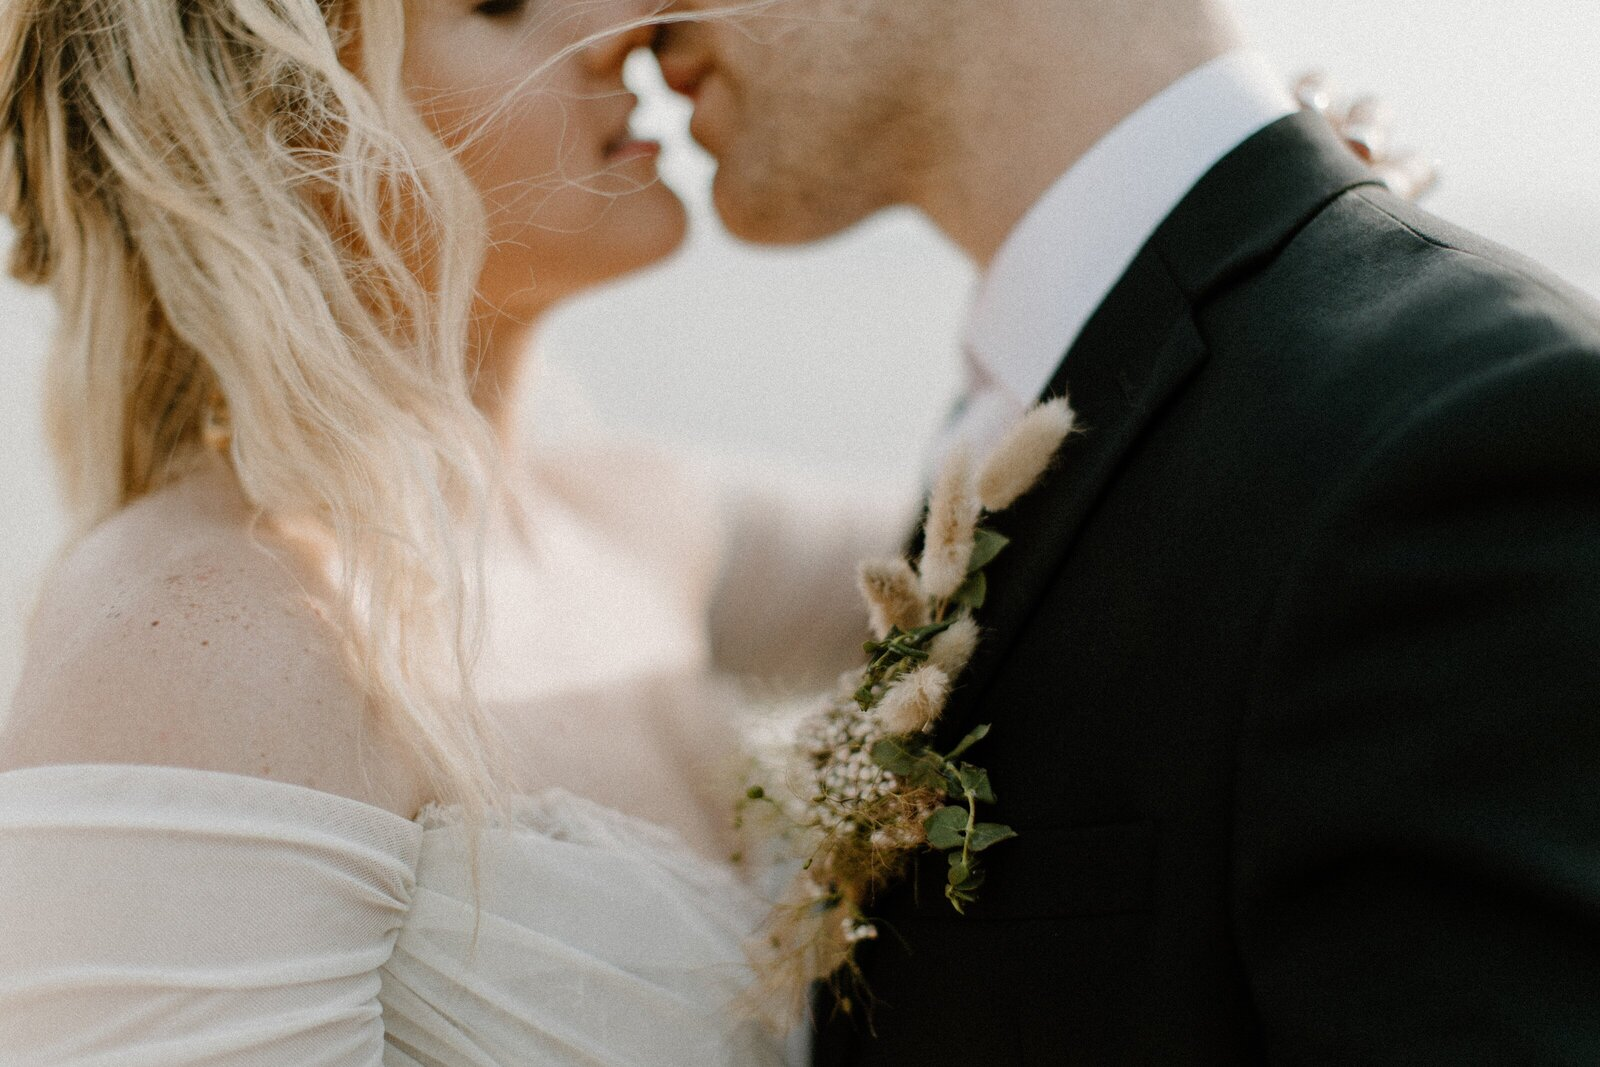 detail of bride and groom kissing close up